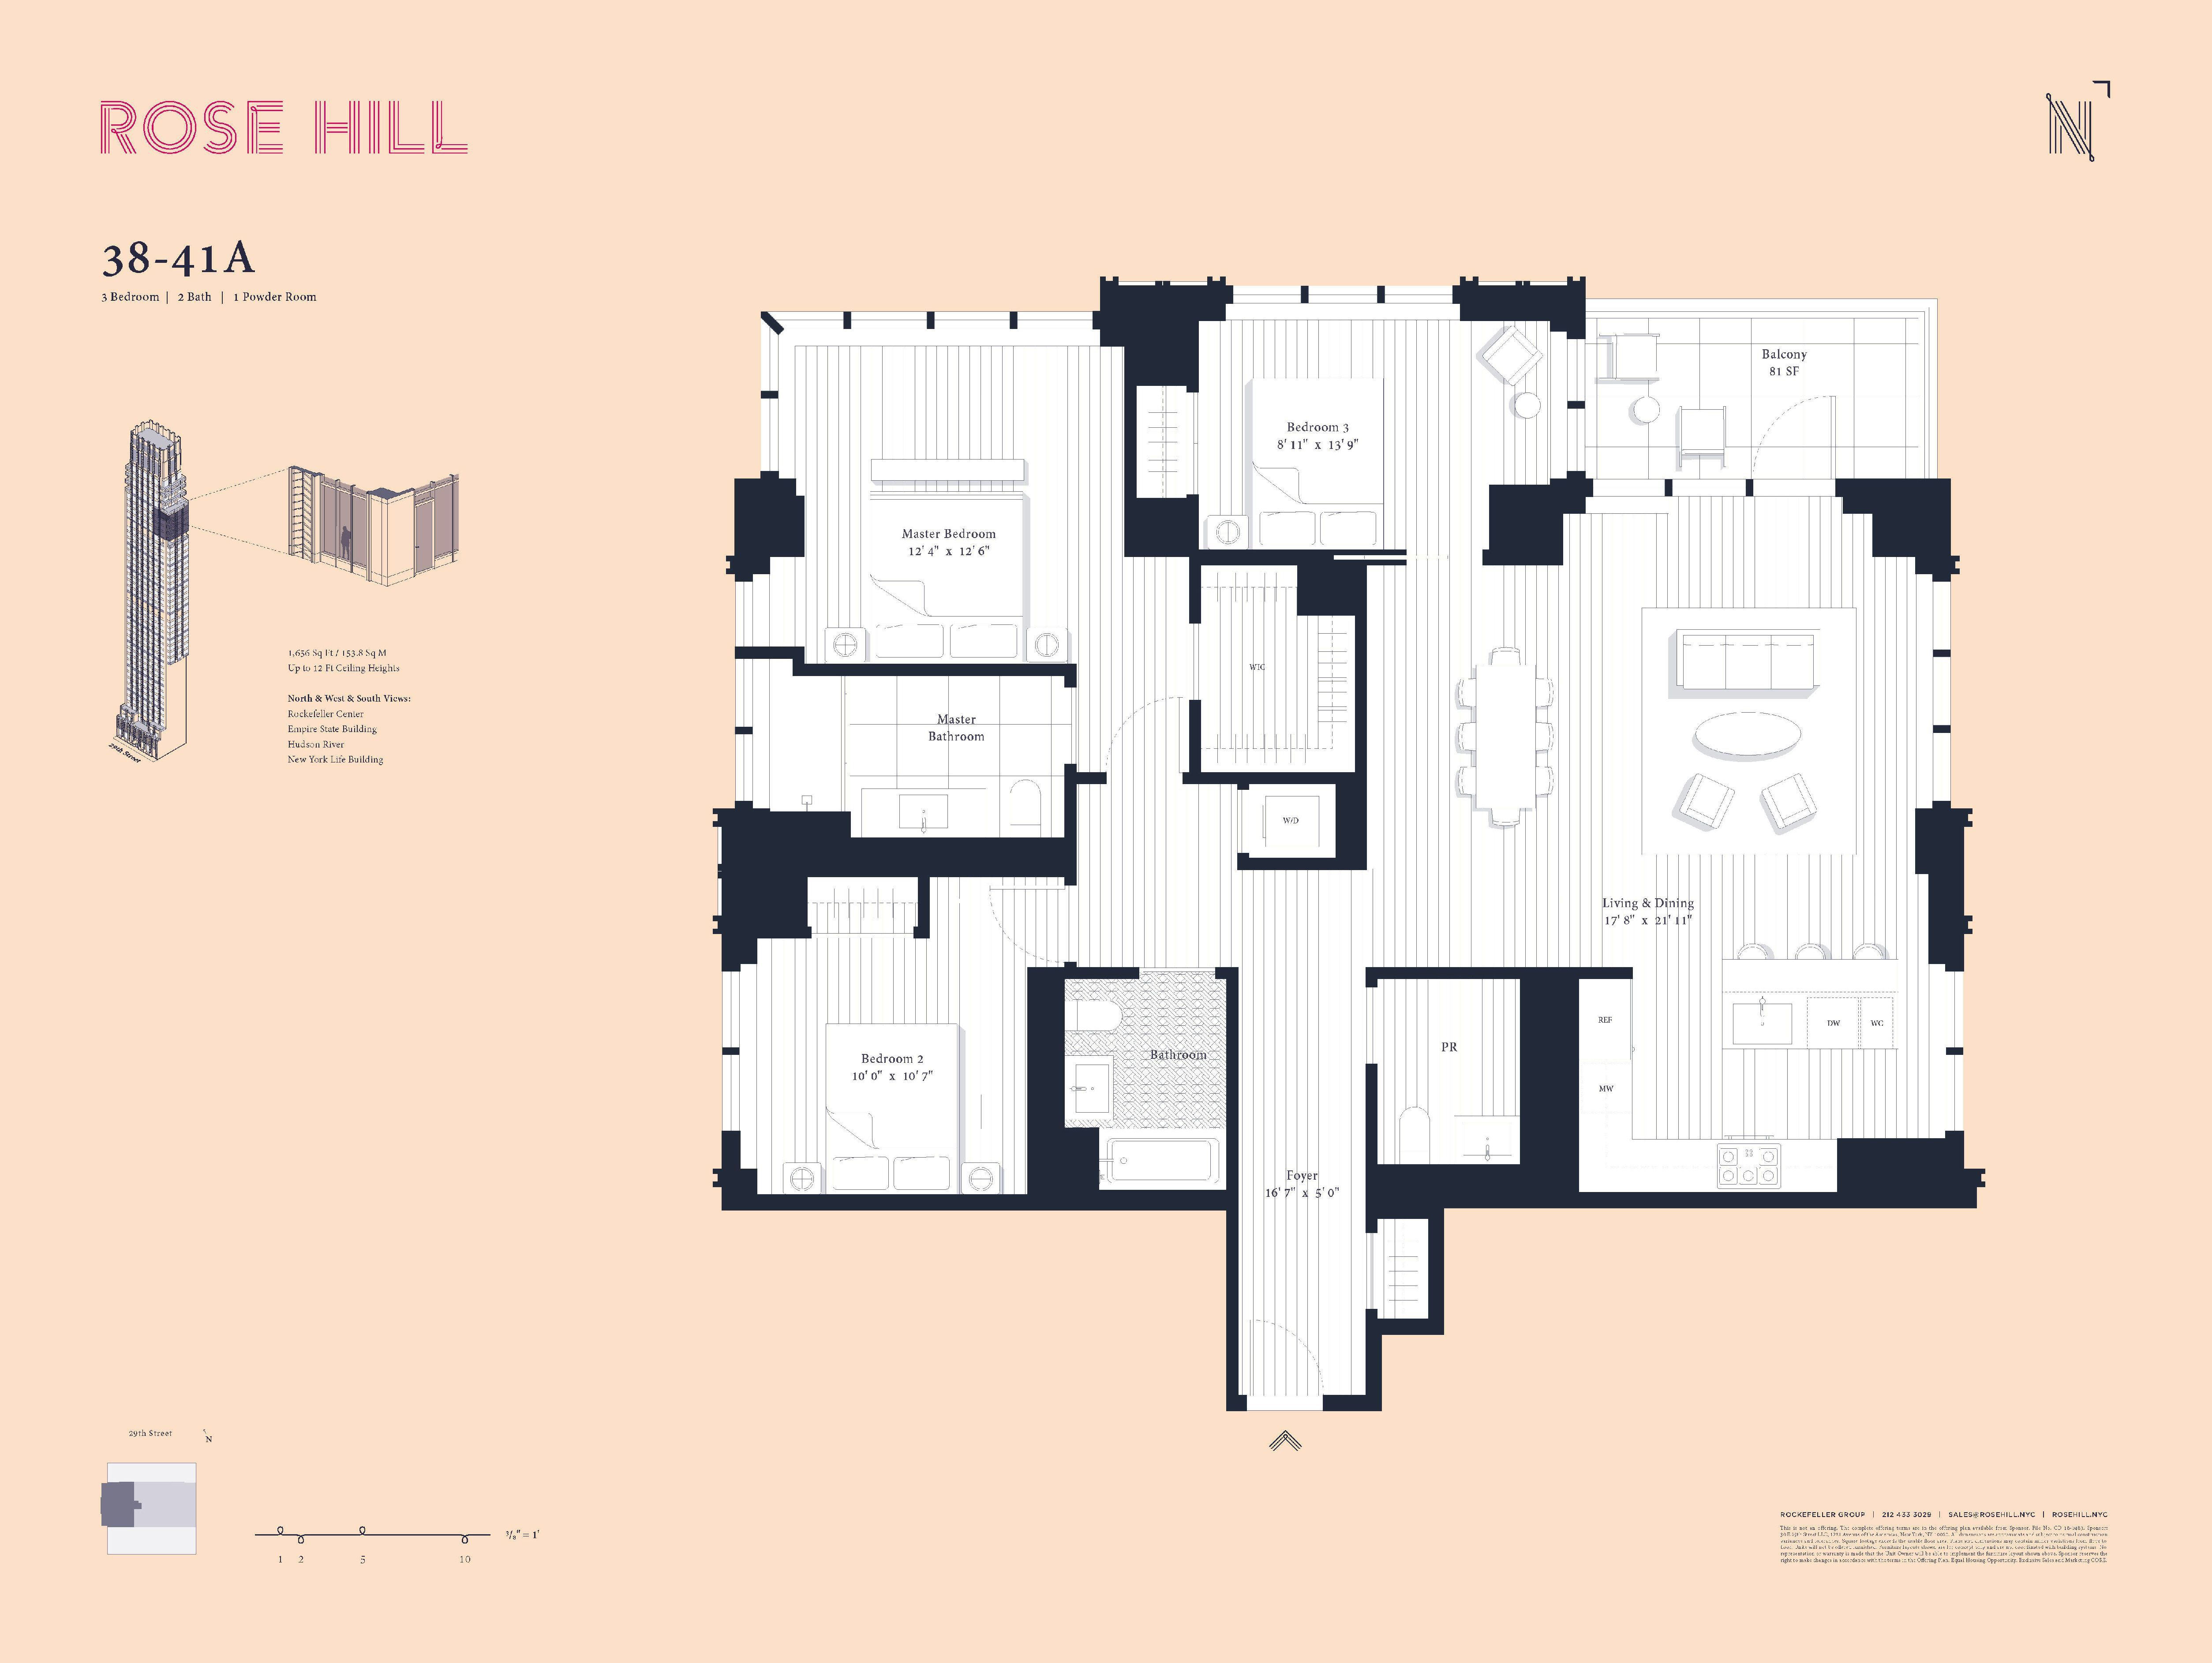 New York City Luxury Real Estate Apartments For Sale Apartment Floor Plans Apartments For Sale Luxury Real Estate